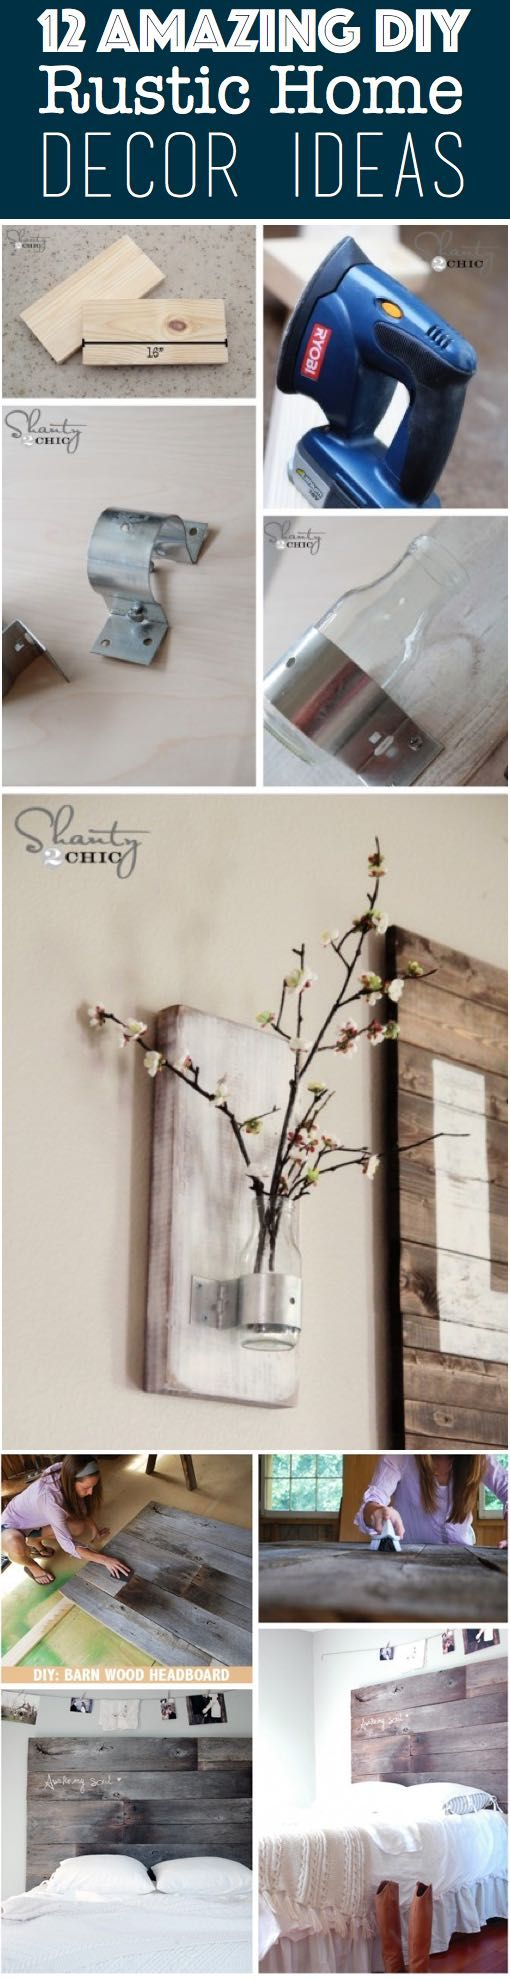 381 best vintage rustic country home decorating ideas images on